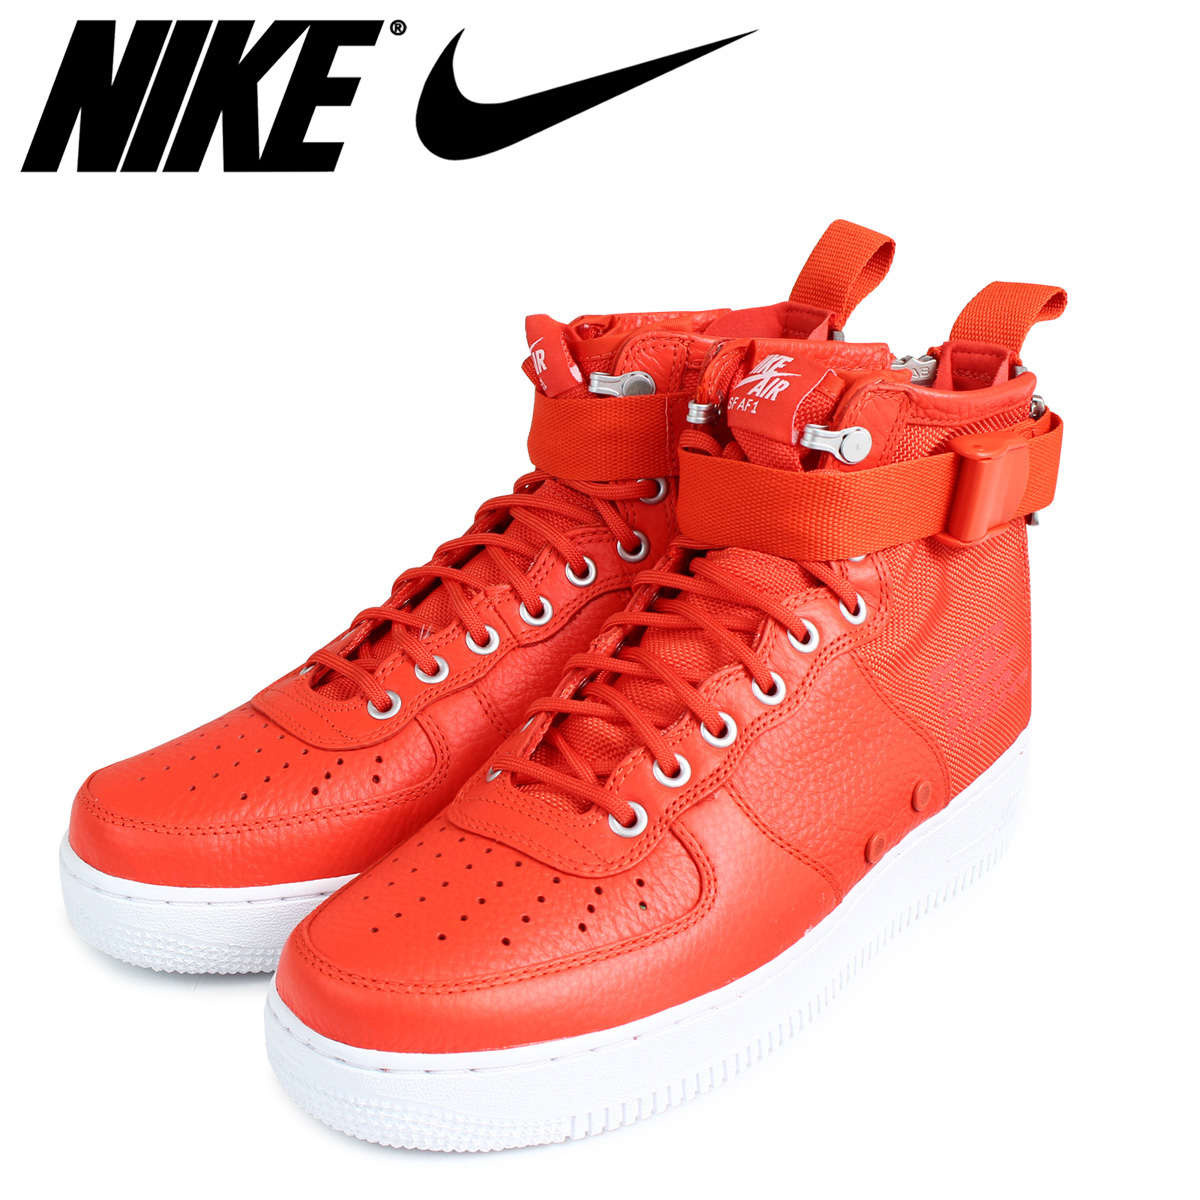 new styles 58978 cc40b NIKE Nike air force 1 MID sneakers SPECIAL FIELD AIR FORCE 1 917,753-800 SF  ...